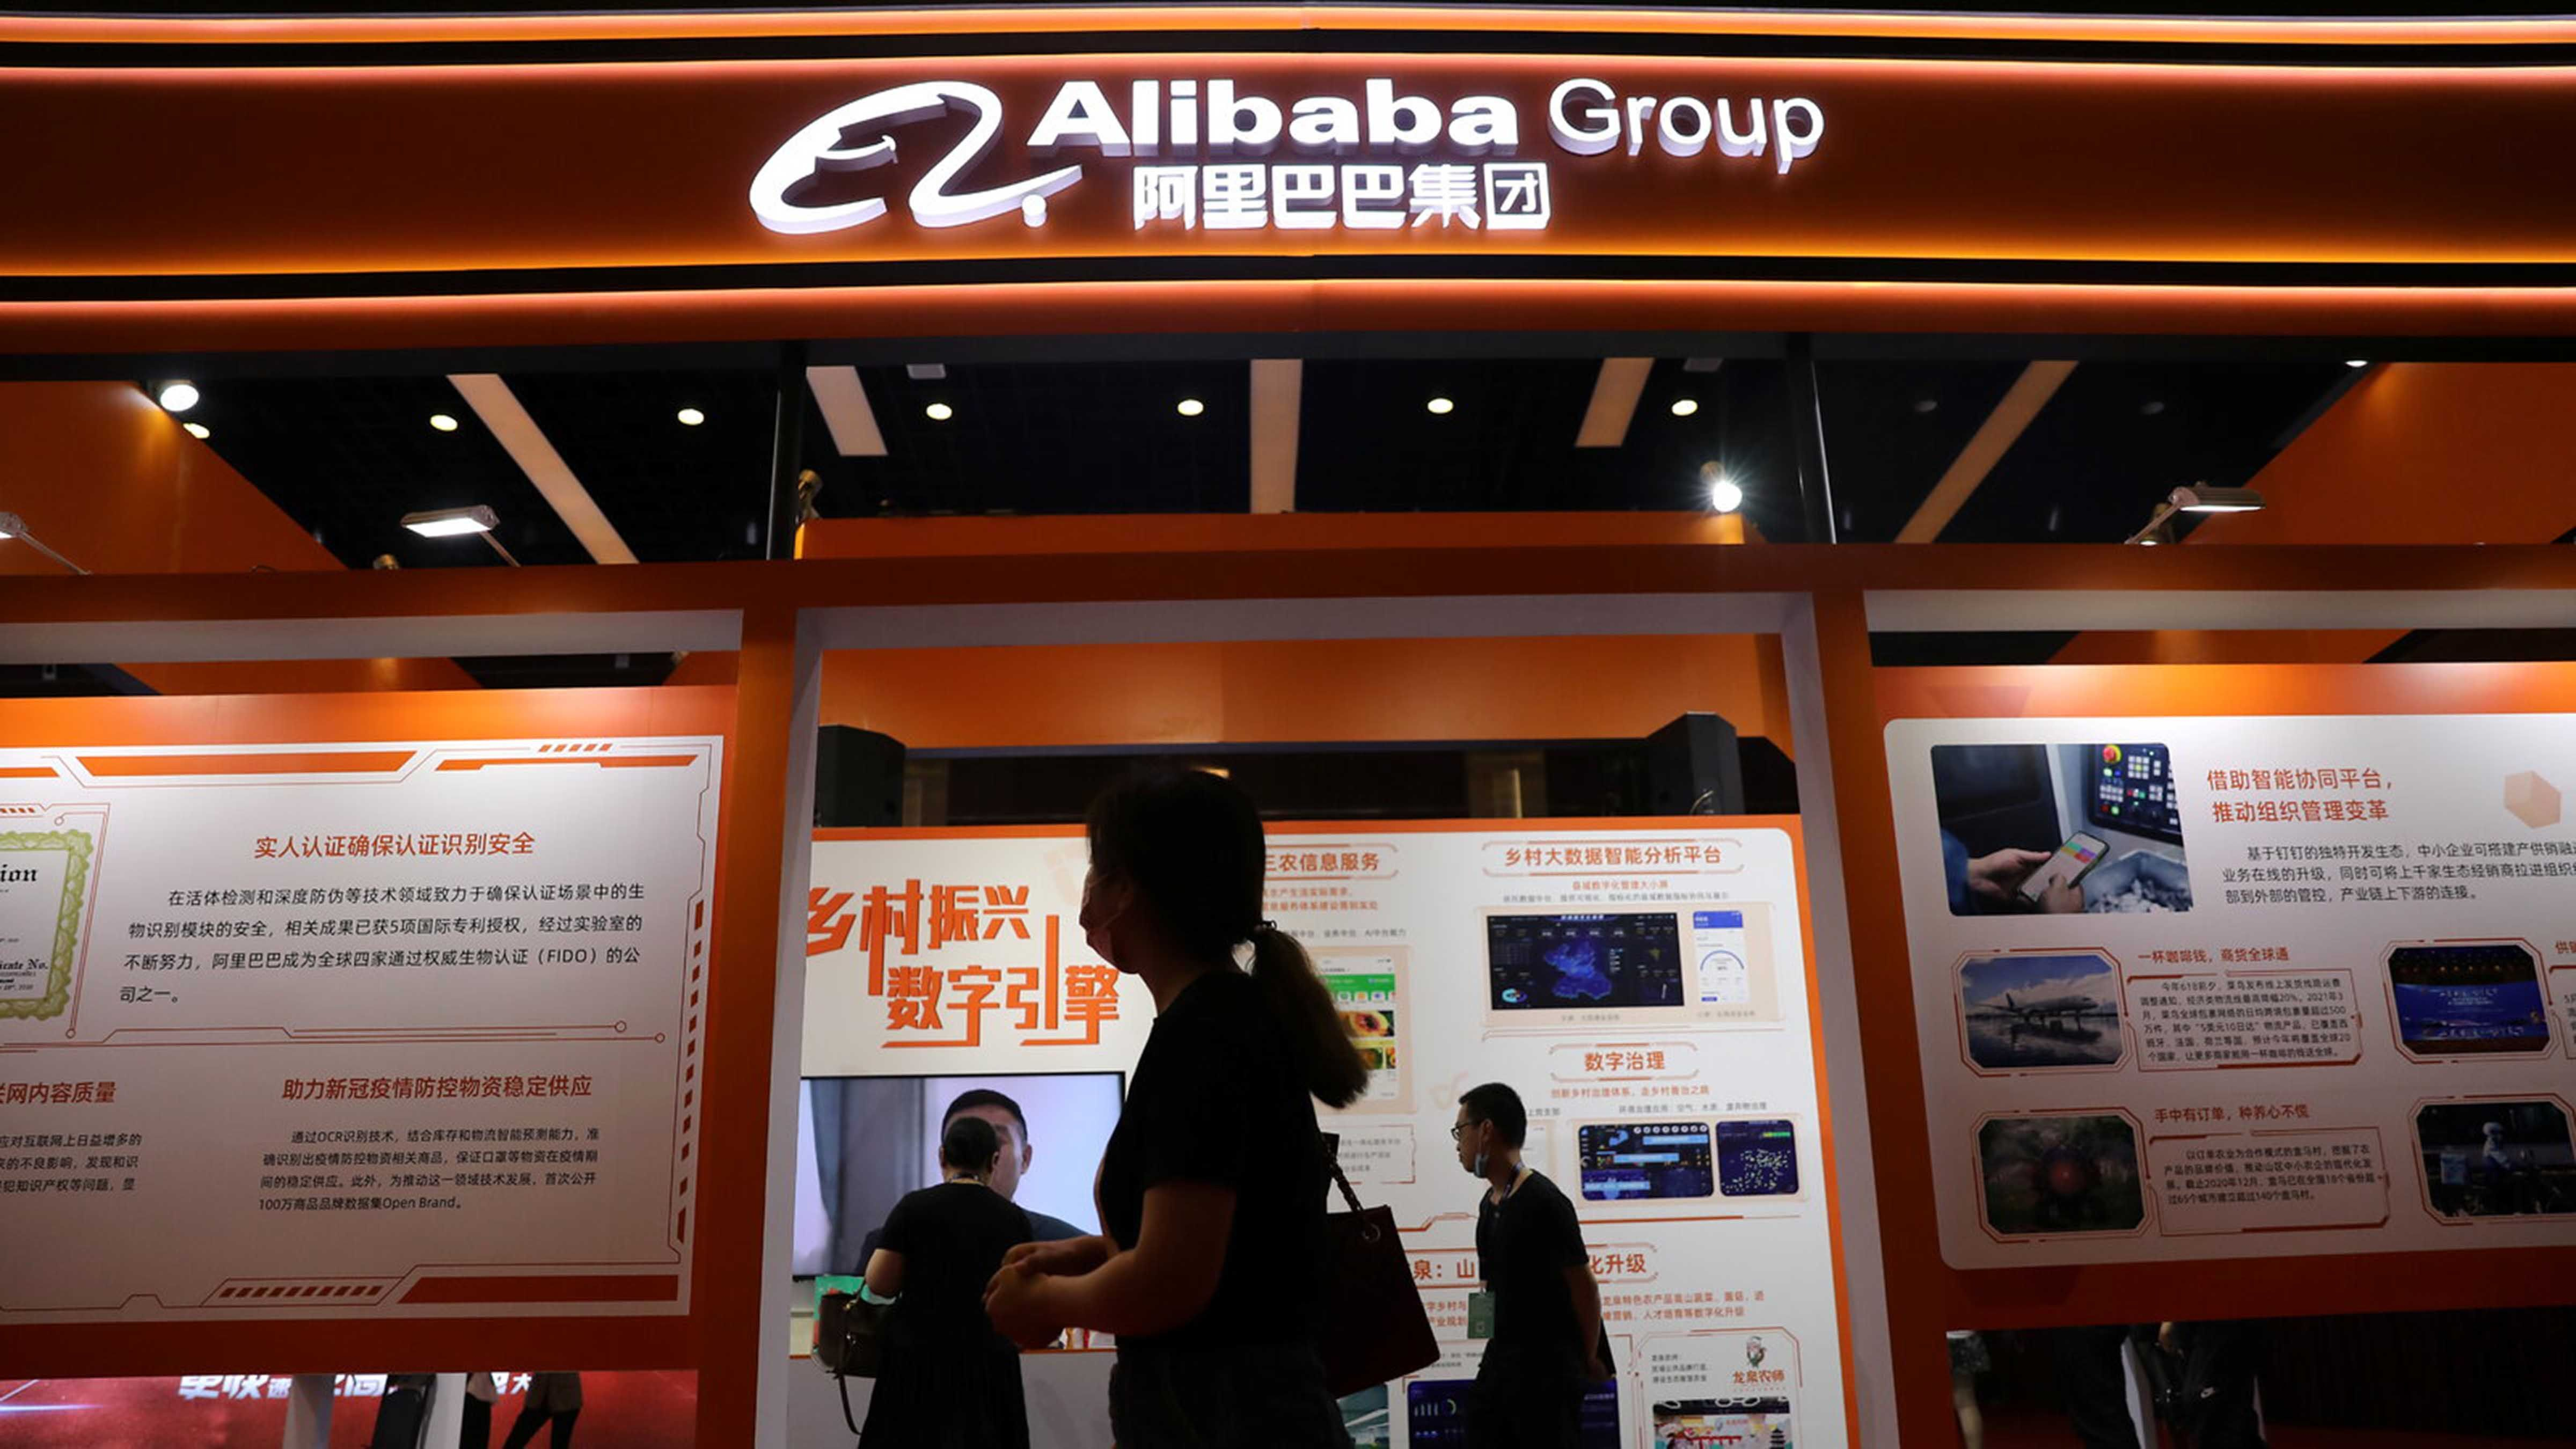 Unsafe workplace Alibaba exec sacked over rape raps photo from The New York Times